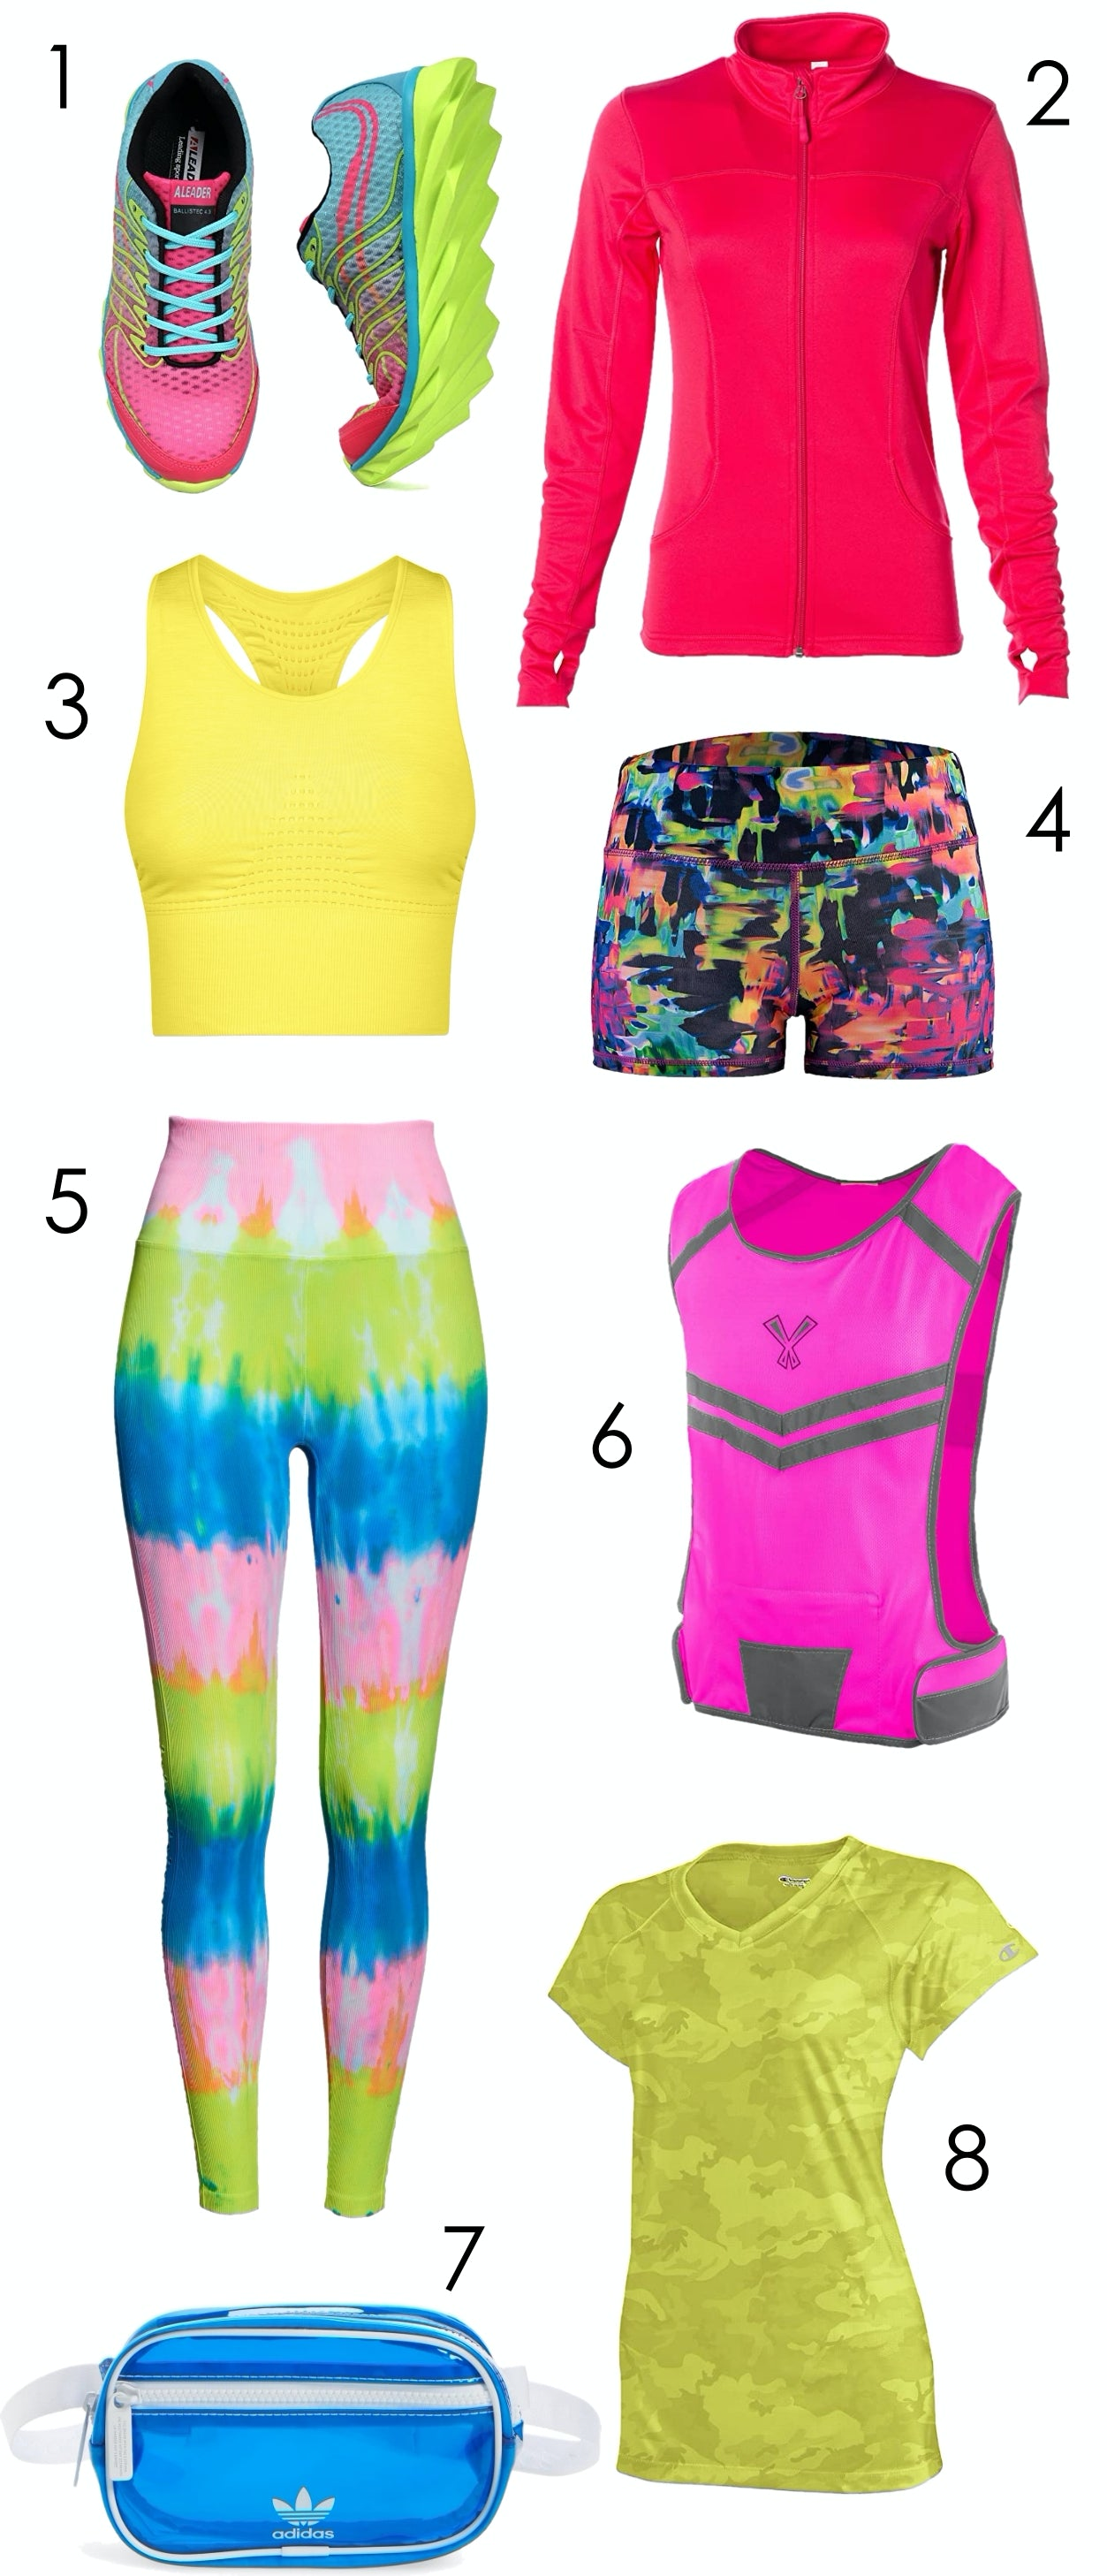 Color Craze: Activewear in Pulse-Racing Neon